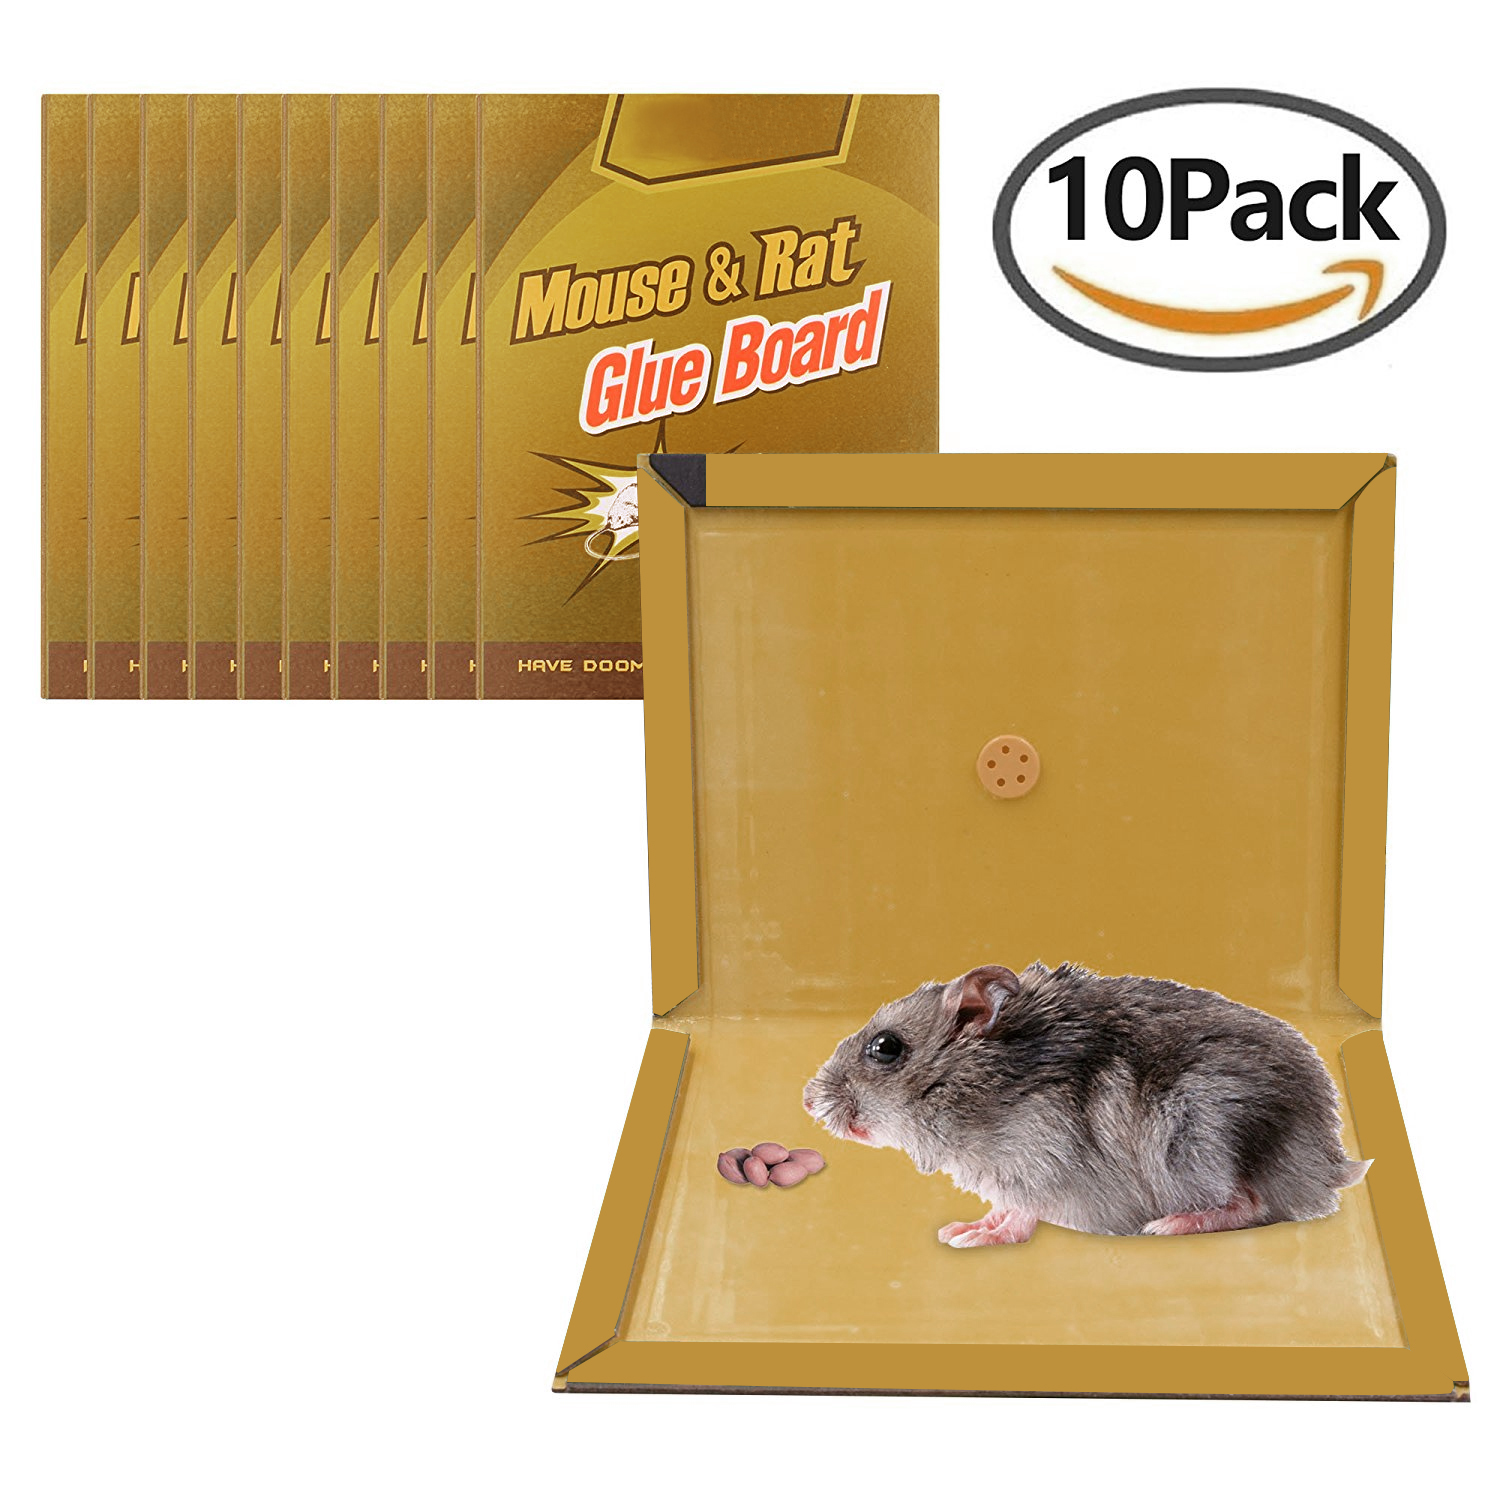 Large Size Peanut Butter Scented Mouse Glue Trap, Sticky Super Hold Glue Board Traps for Mice Rats Rodents Cockroaches Bugs Ants Spiders Scorpions 10 PACK